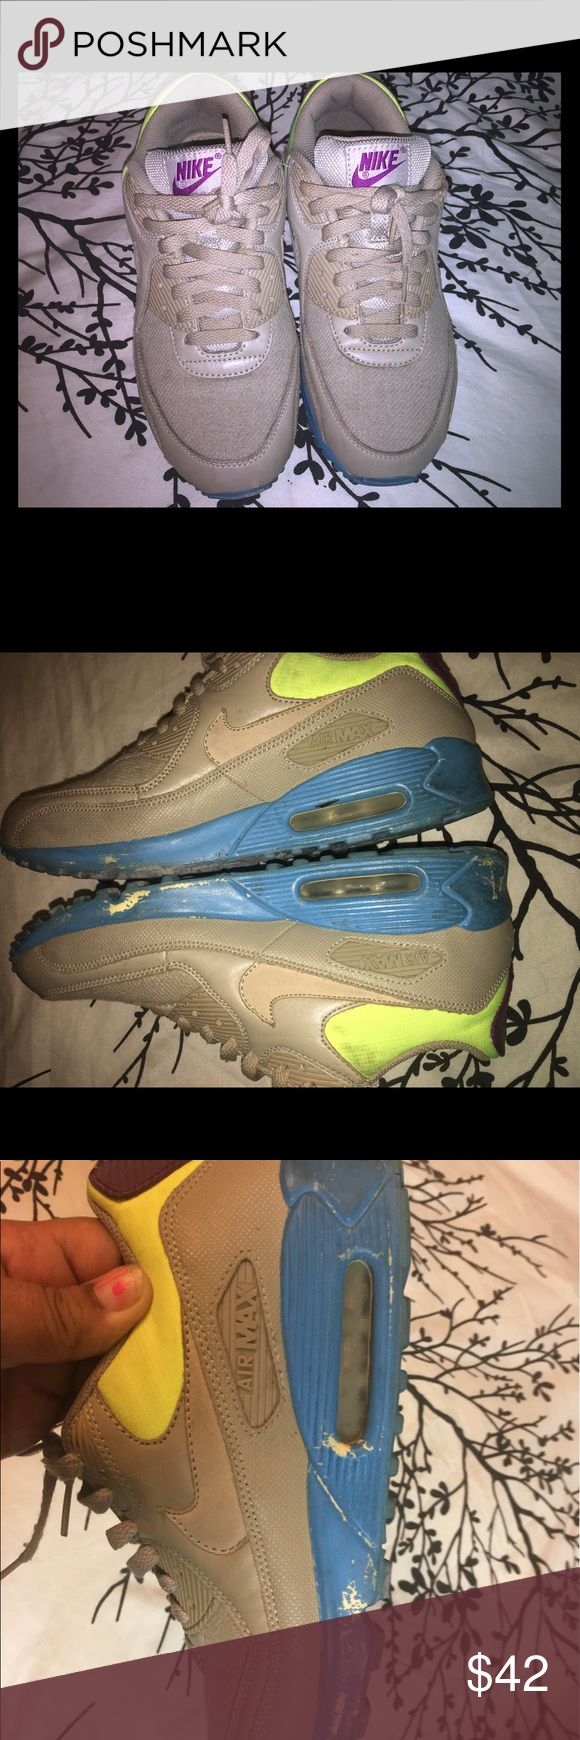 Men's size 8.5 women's size 10 Airmax I loved this sneaker! Just outgrew it.  Very colorful. Shows sign of wear see all pictures please ask any questions before buying. Treads are in good shape. Nike Shoes Sneakers